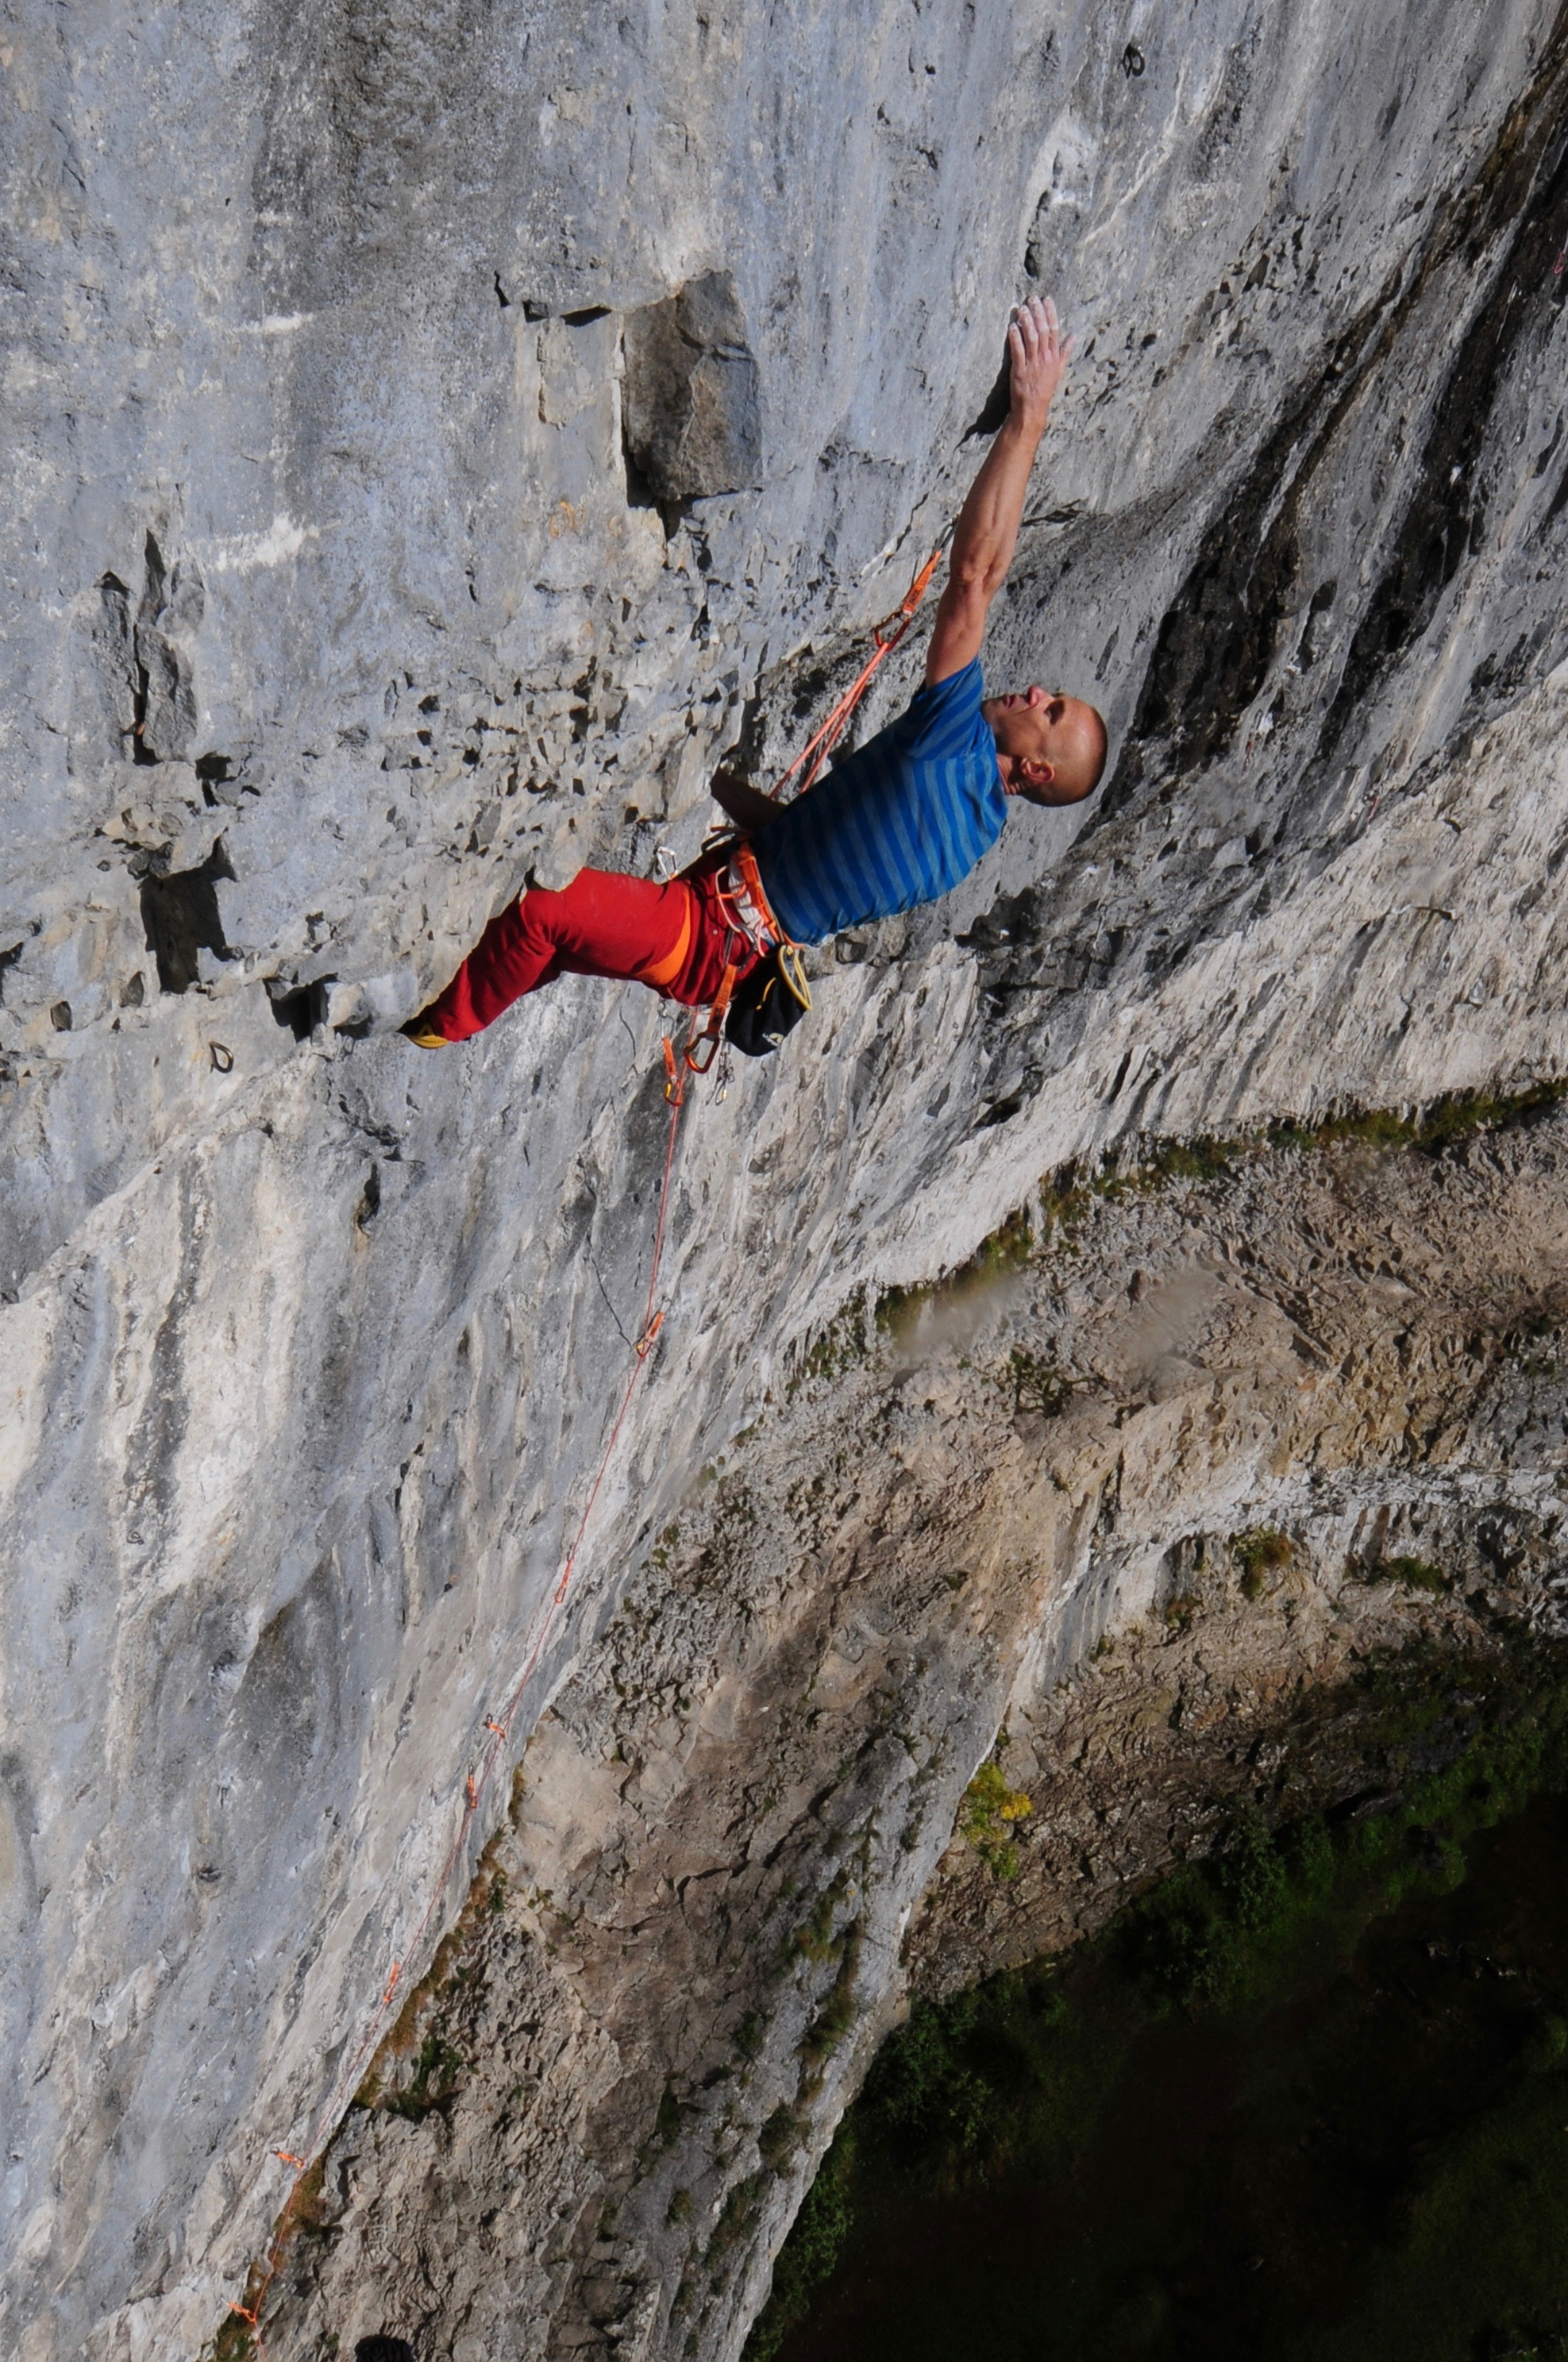 Putting his methods into practice - Neil on the first ascent of Sabotage 8c+/9a, Malham Cove in 2016. Photo: Ian Parnell